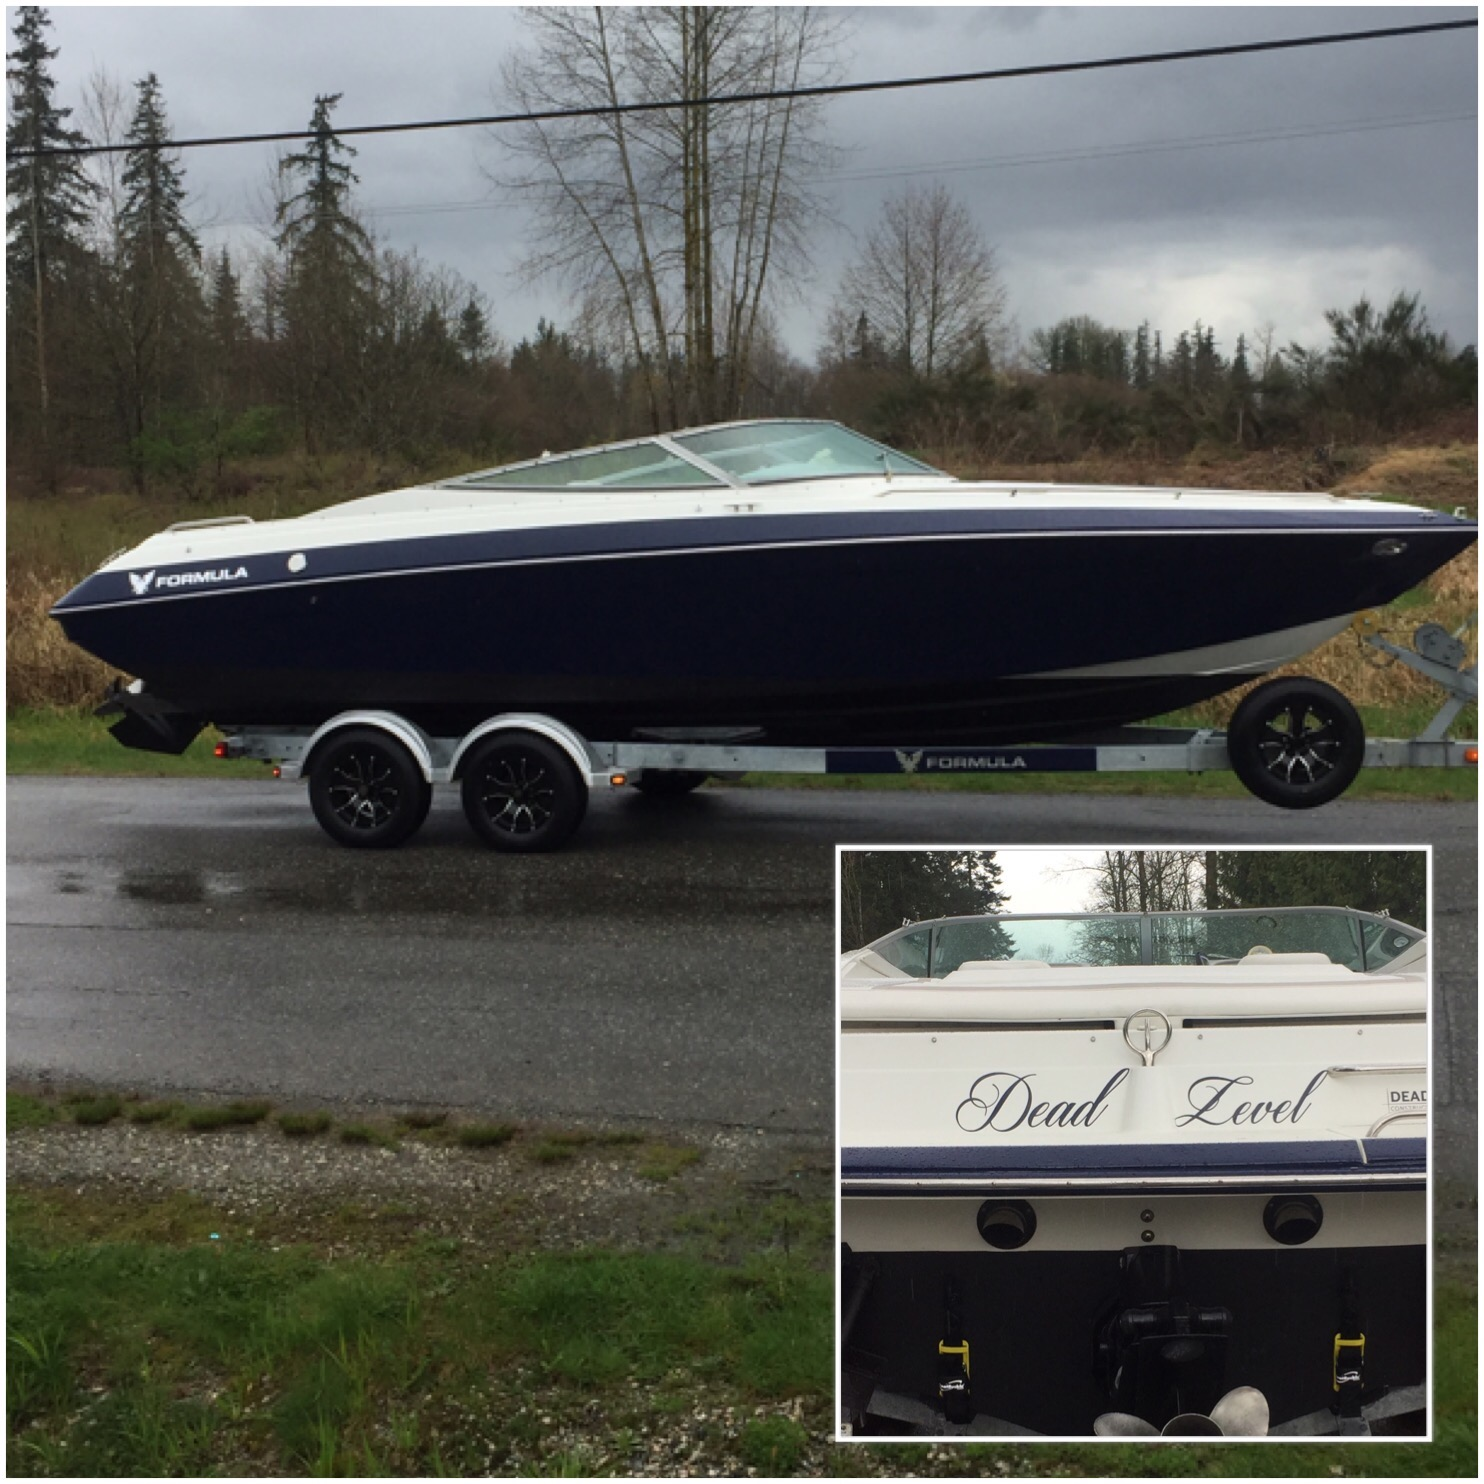 Marine d3 for sale in canada - Cheap spring break trip